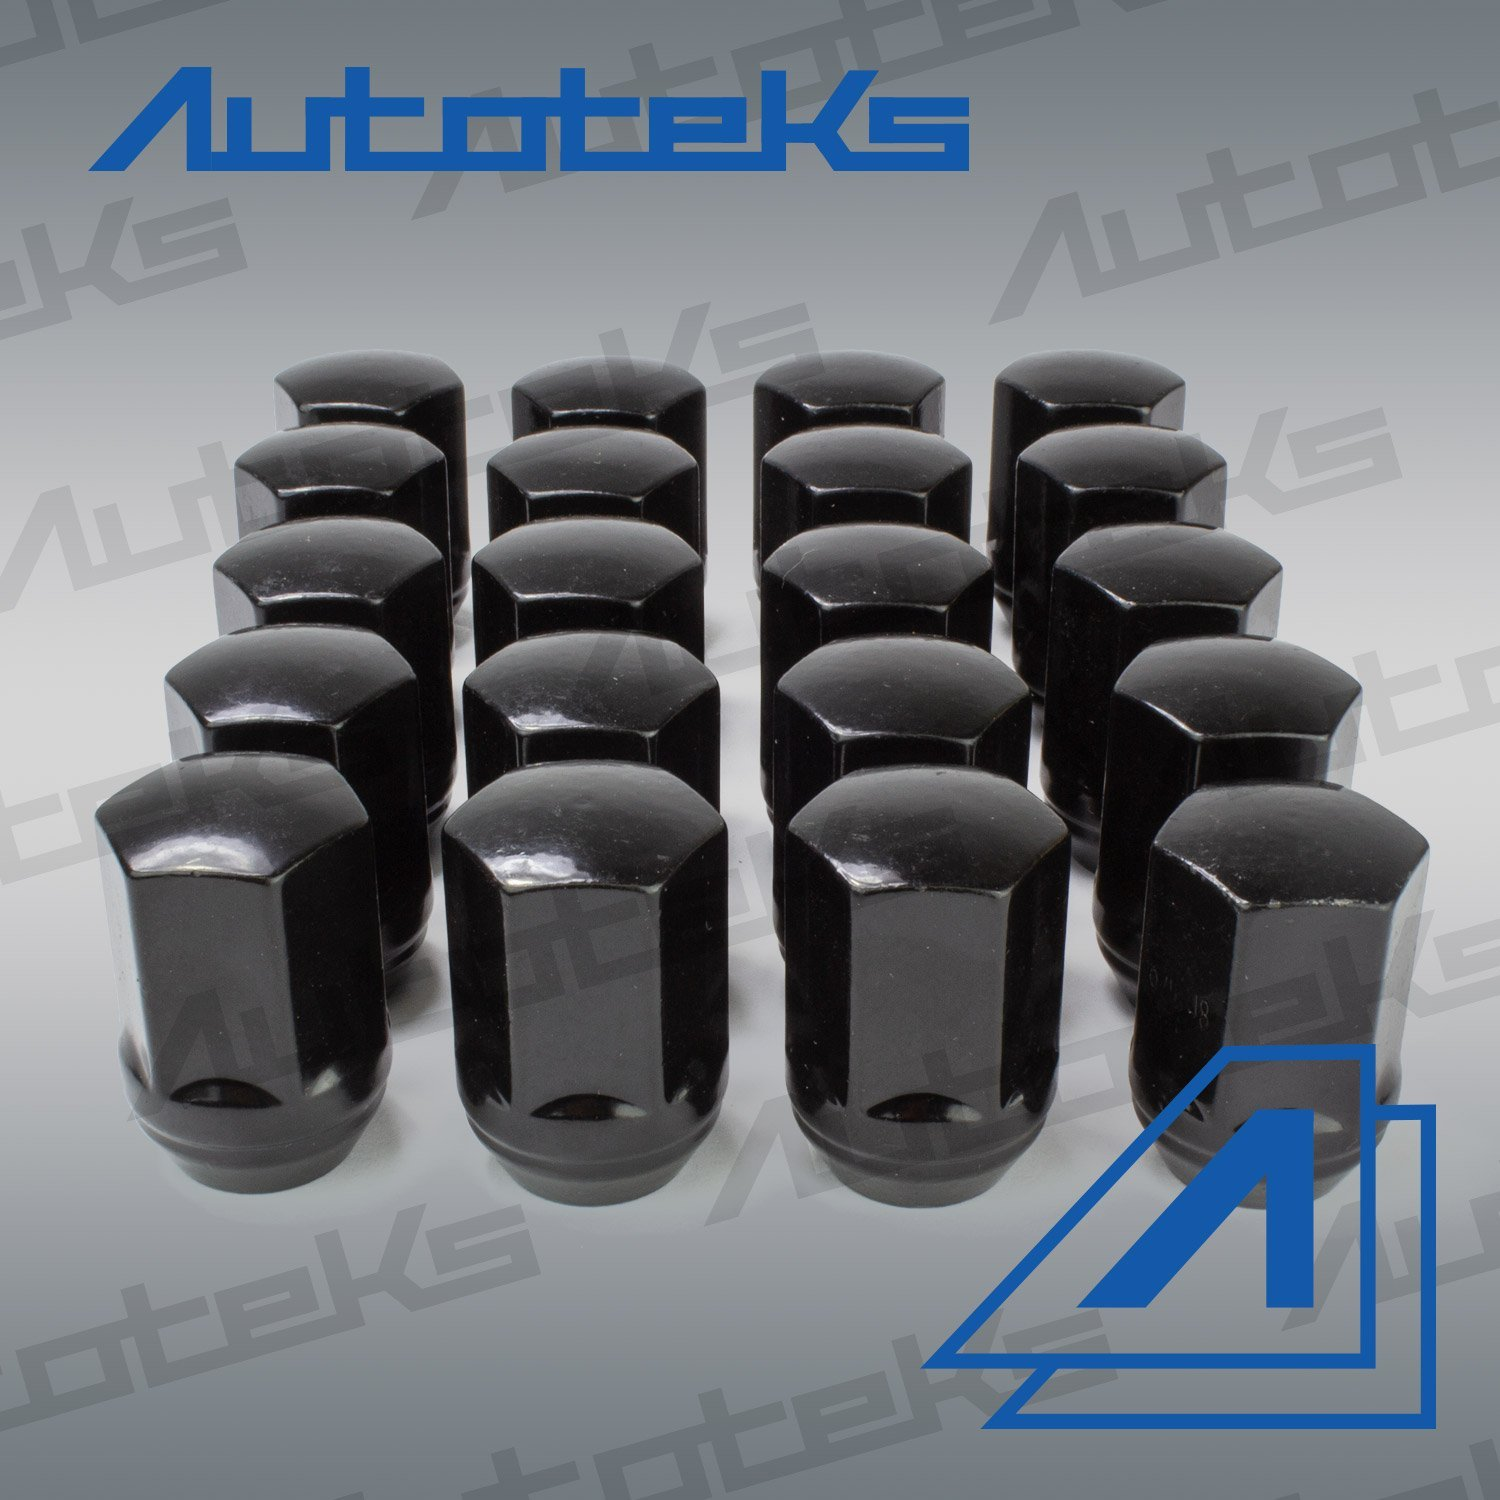 20 Pc 9/16'' Black OEM Style Factory Lug Nuts | Works with 2002-2011 Dodge Ram 1500 Dakota & Durango Factory Wheels